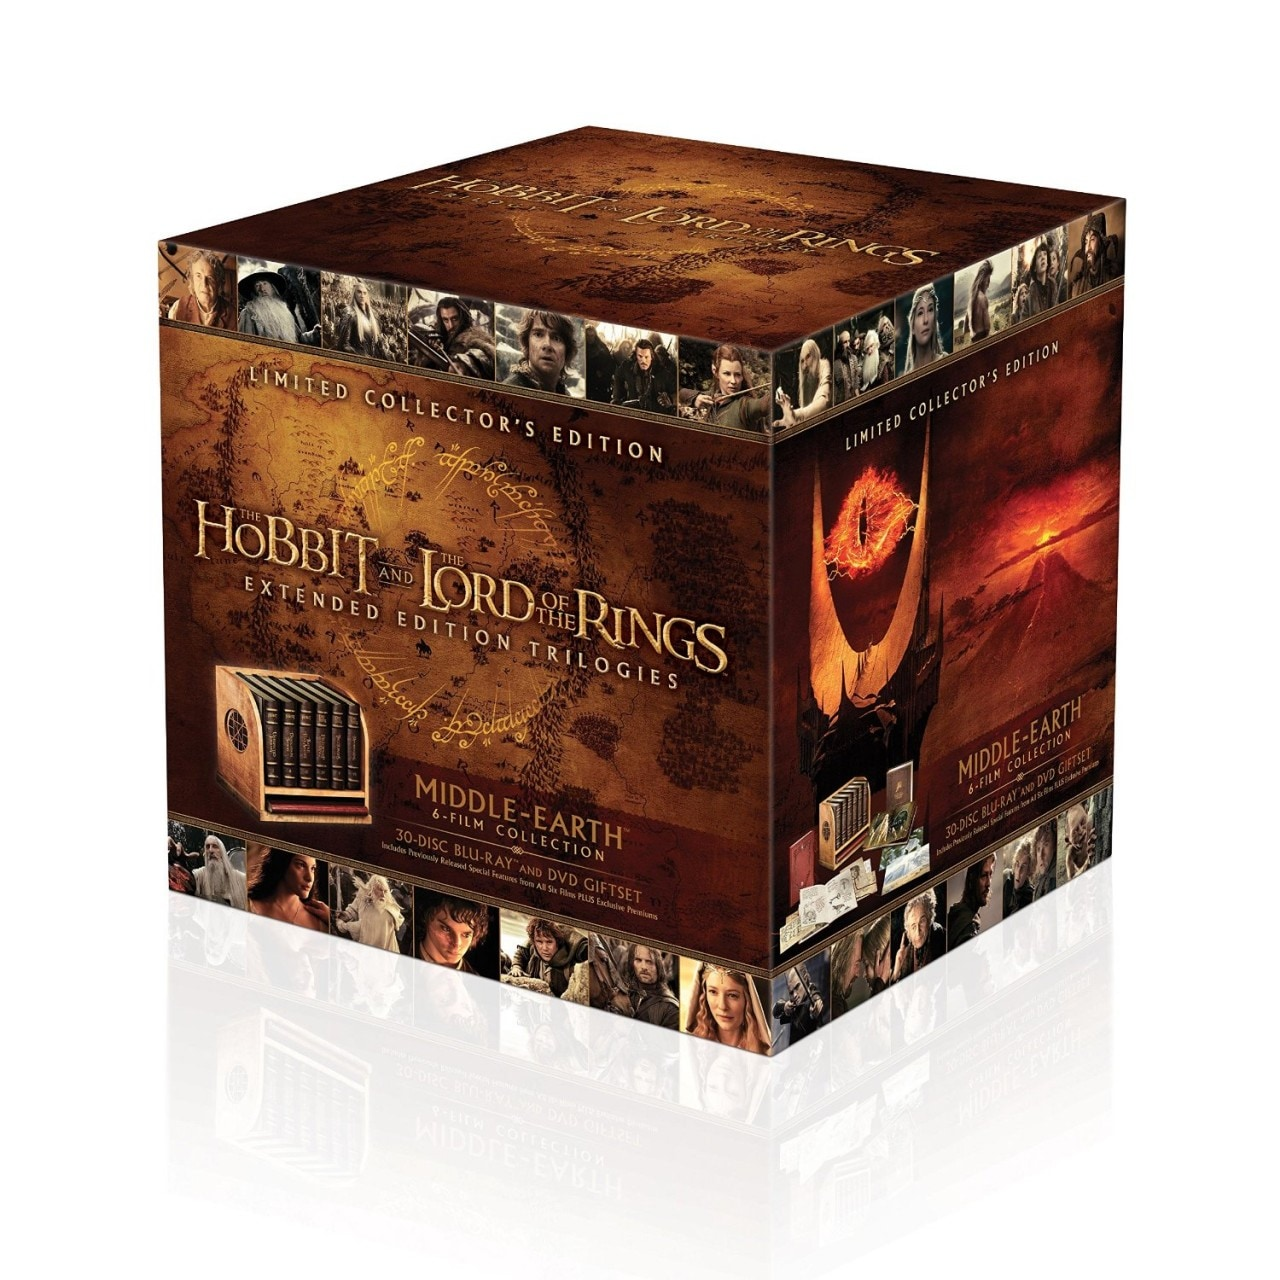 Middle Earth Collection Extended Edition3